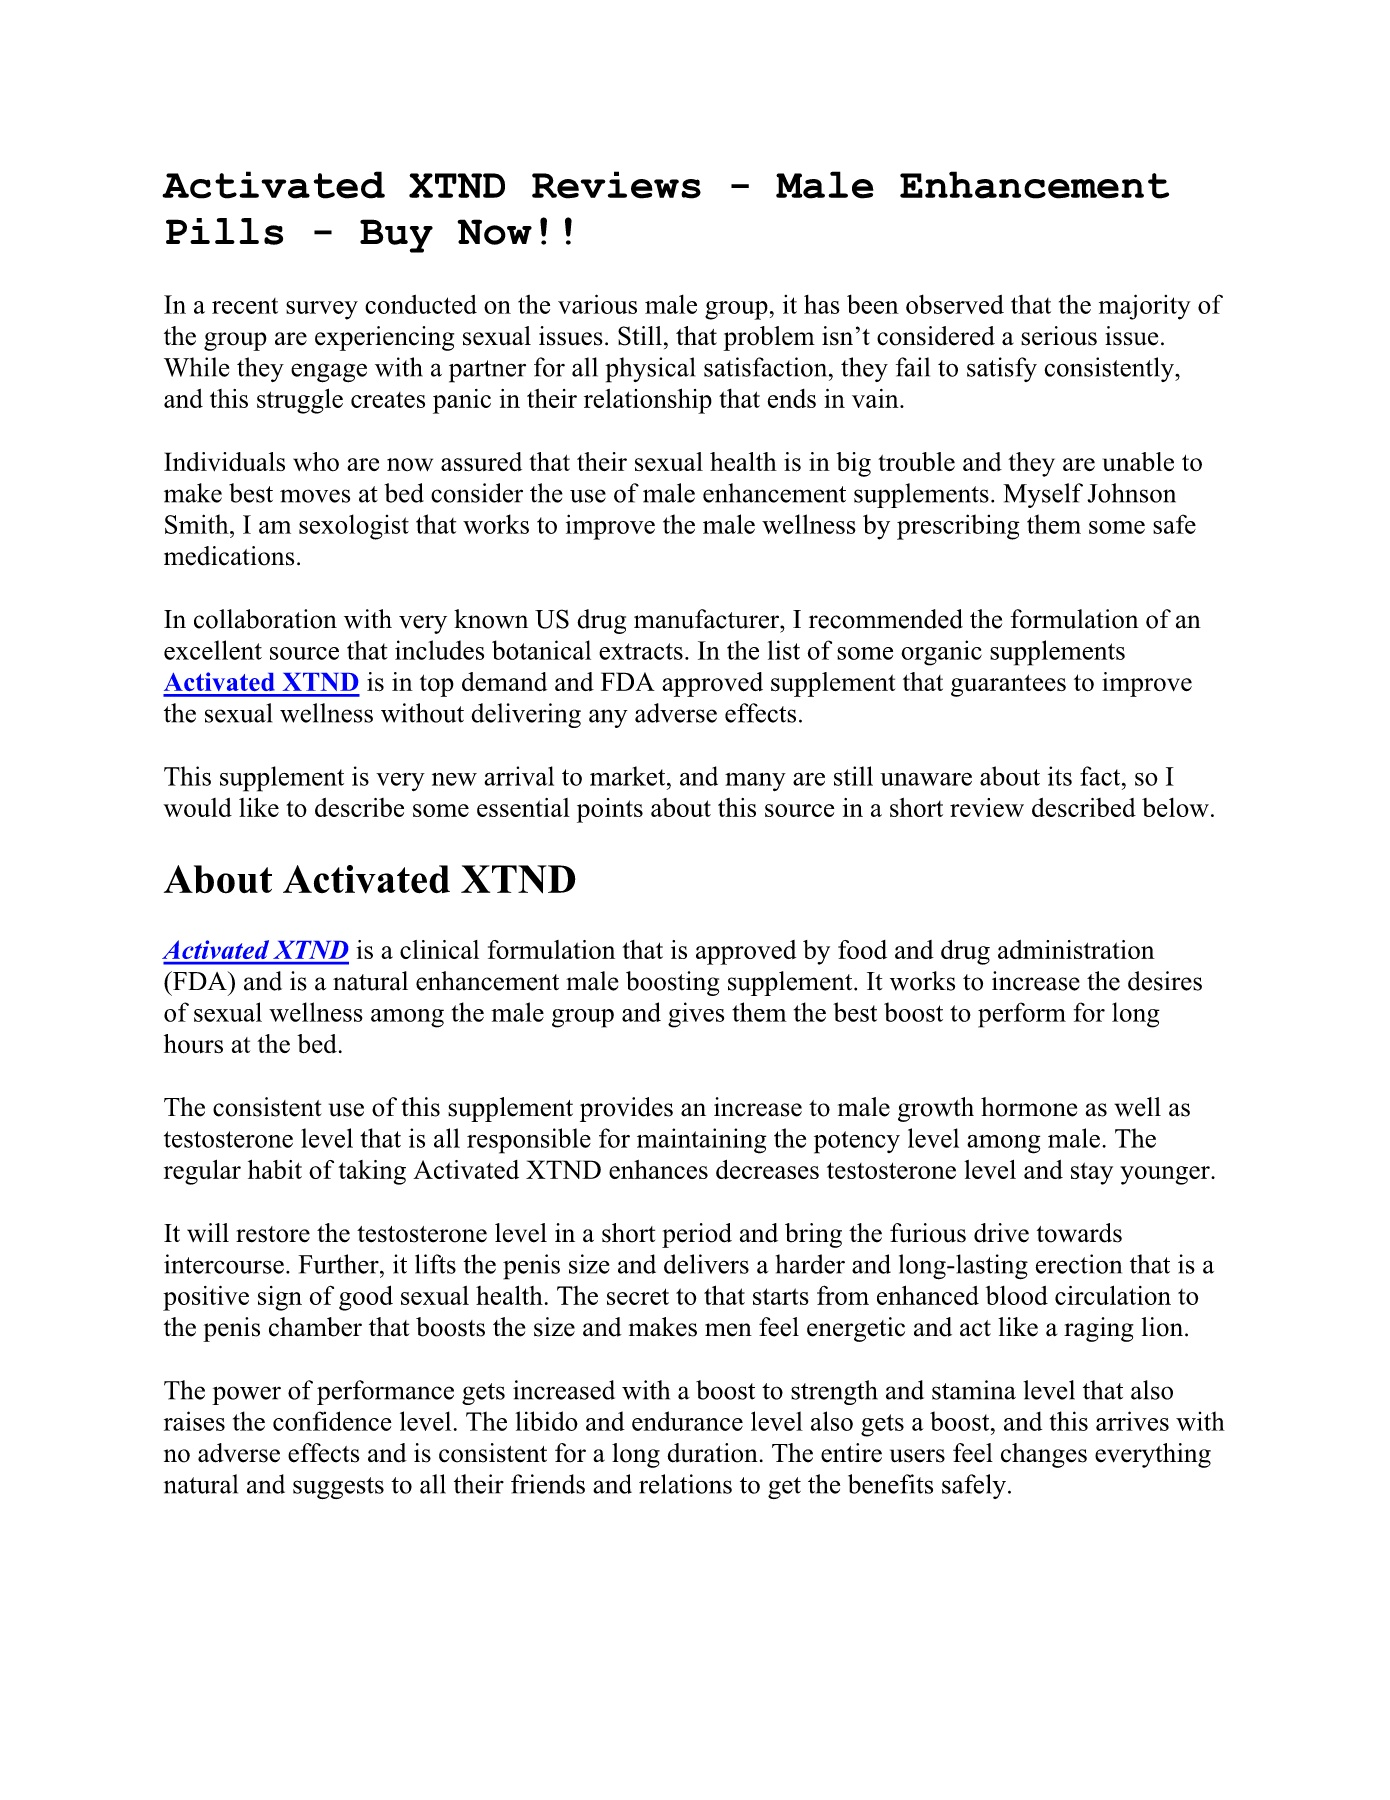 Activated XTND Reviews Pages 1 - 5 - Text Version | AnyFlip